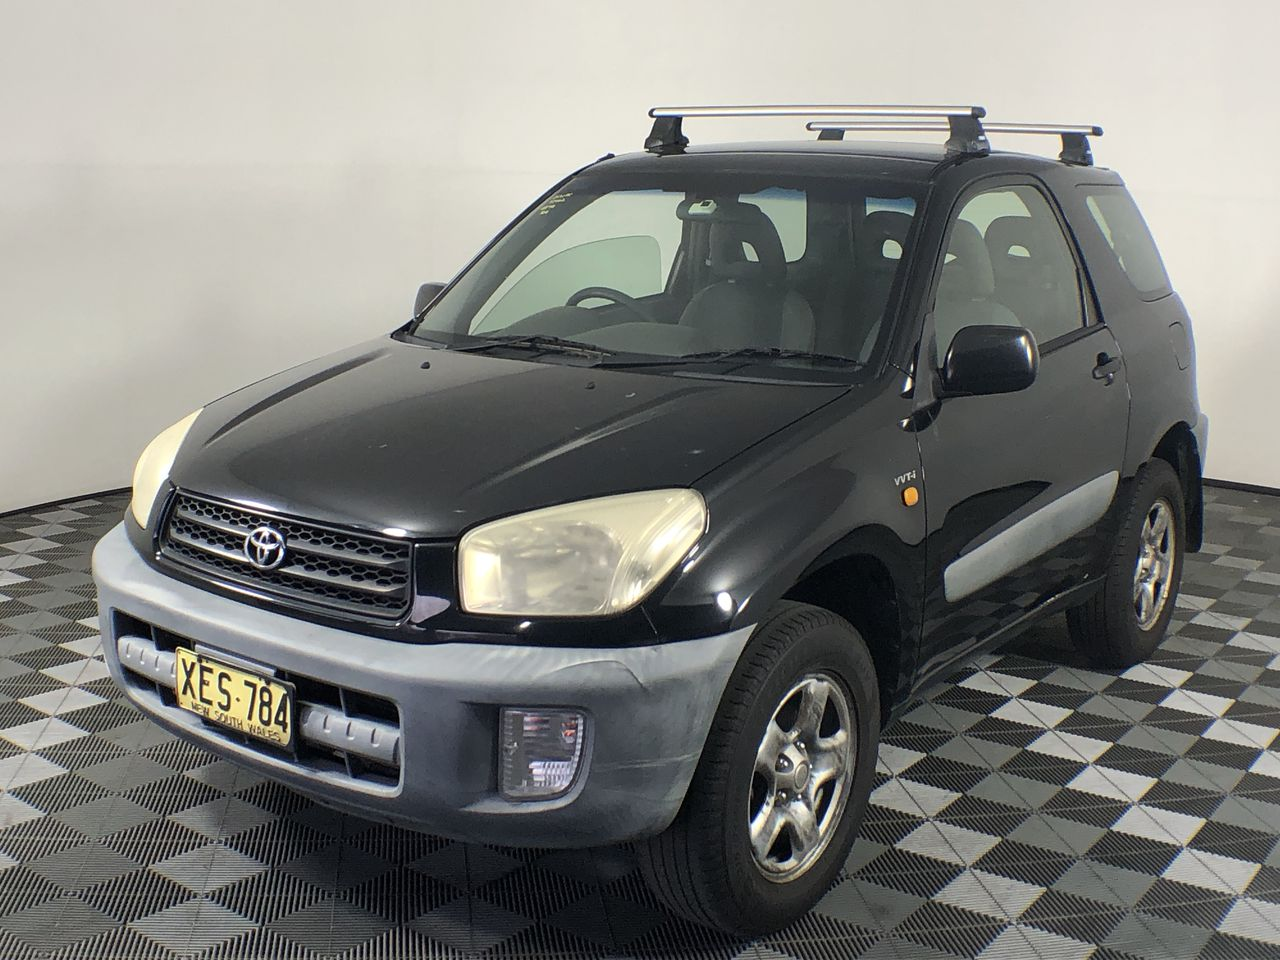 2001 Toyota Rav 4 Edge (4x4) Manual Wagon